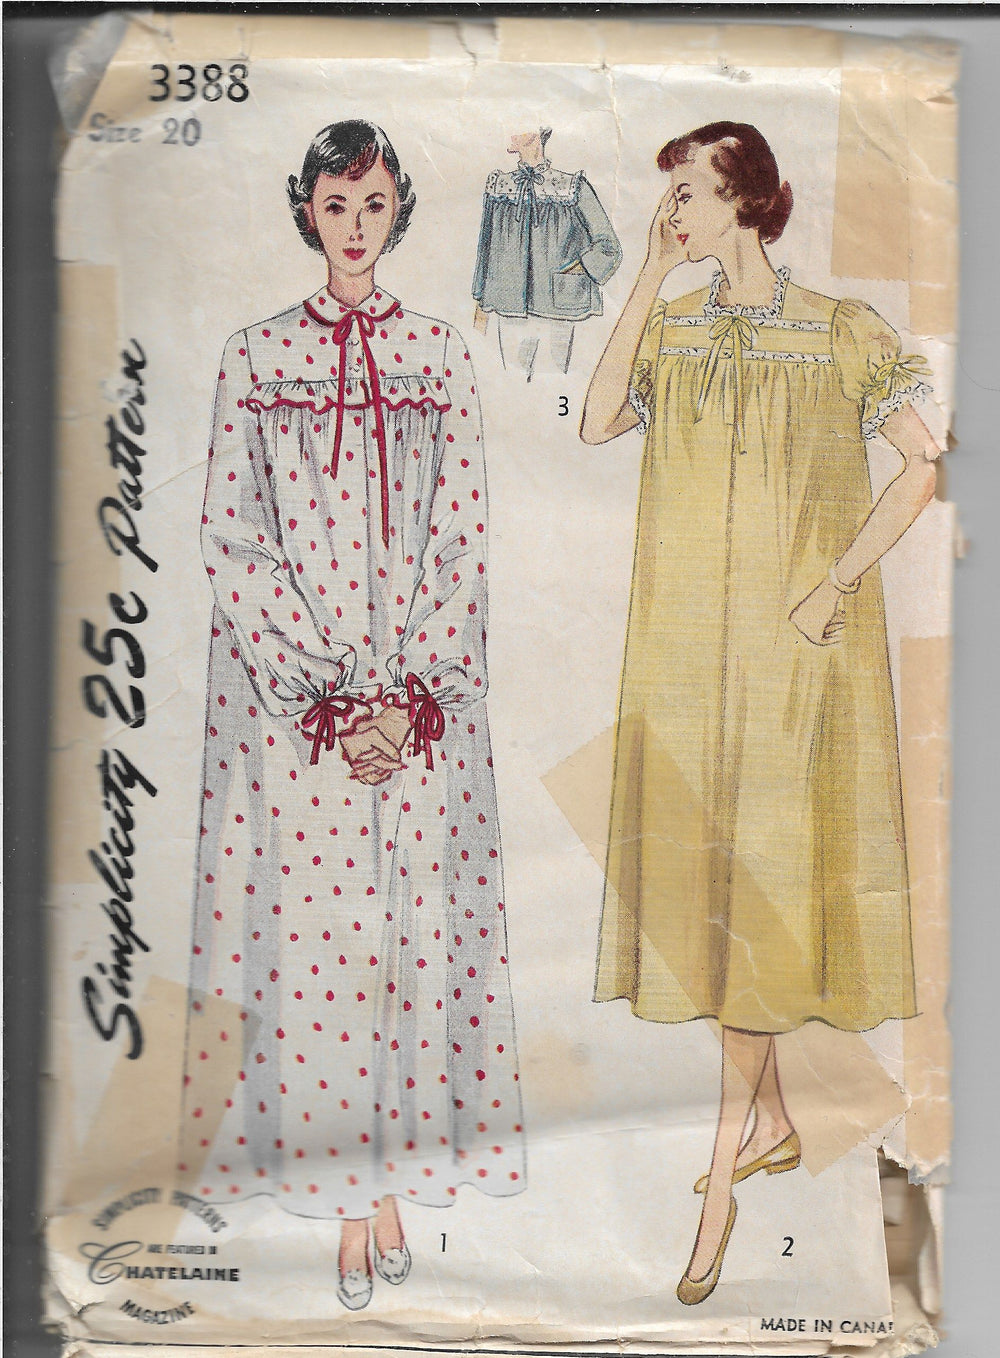 Simplicity 3388 Vintage Sewing Pattern 1950s Ladies Nightgown Bed Jacket - VintageStitching - Vintage Sewing Patterns